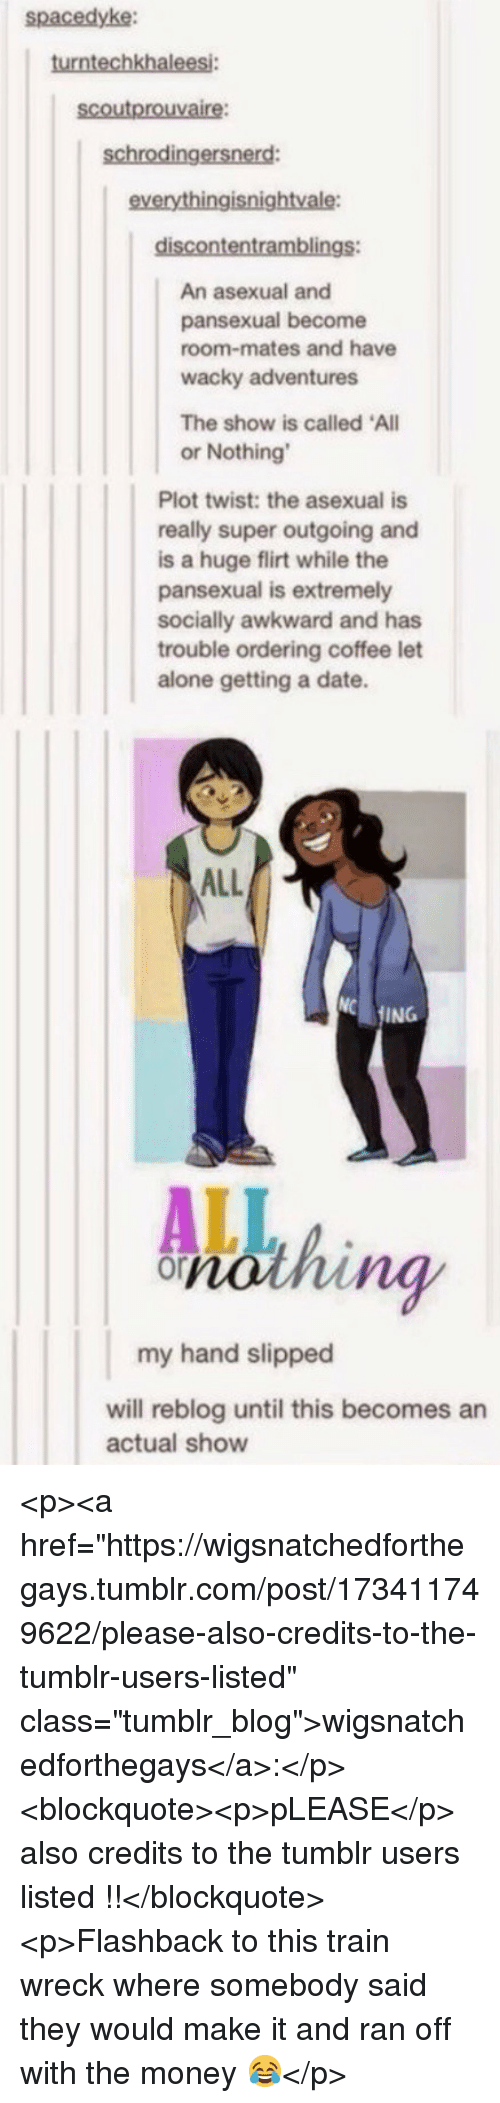 """Being Alone, Money, and Tumblr: spacedyke:  turntechkhalees  scoutprouvaire:  schrodingersnerd  everythingisnightvale  An asexual and  pansexual become  room-mates and have  wacky adventures  The show is called All  or Nothing  Plot twist: the asexual is  really super outgoing and  is a huge flirt while the  pansexual is extremely  socially awkward and has  trouble ordering coffee let  alone getting a date.  ALL  ING  ng  my hand slipped  will reblog until this becomes an  actual show <p><a href=""""https://wigsnatchedforthegays.tumblr.com/post/173411749622/please-also-credits-to-the-tumblr-users-listed"""" class=""""tumblr_blog"""">wigsnatchedforthegays</a>:</p>  <blockquote><p>pLEASE</p>  also credits to the tumblr users listed !!</blockquote>  <p>Flashback to this train wreck where somebody said they would make it and ran off with the money 😂</p>"""